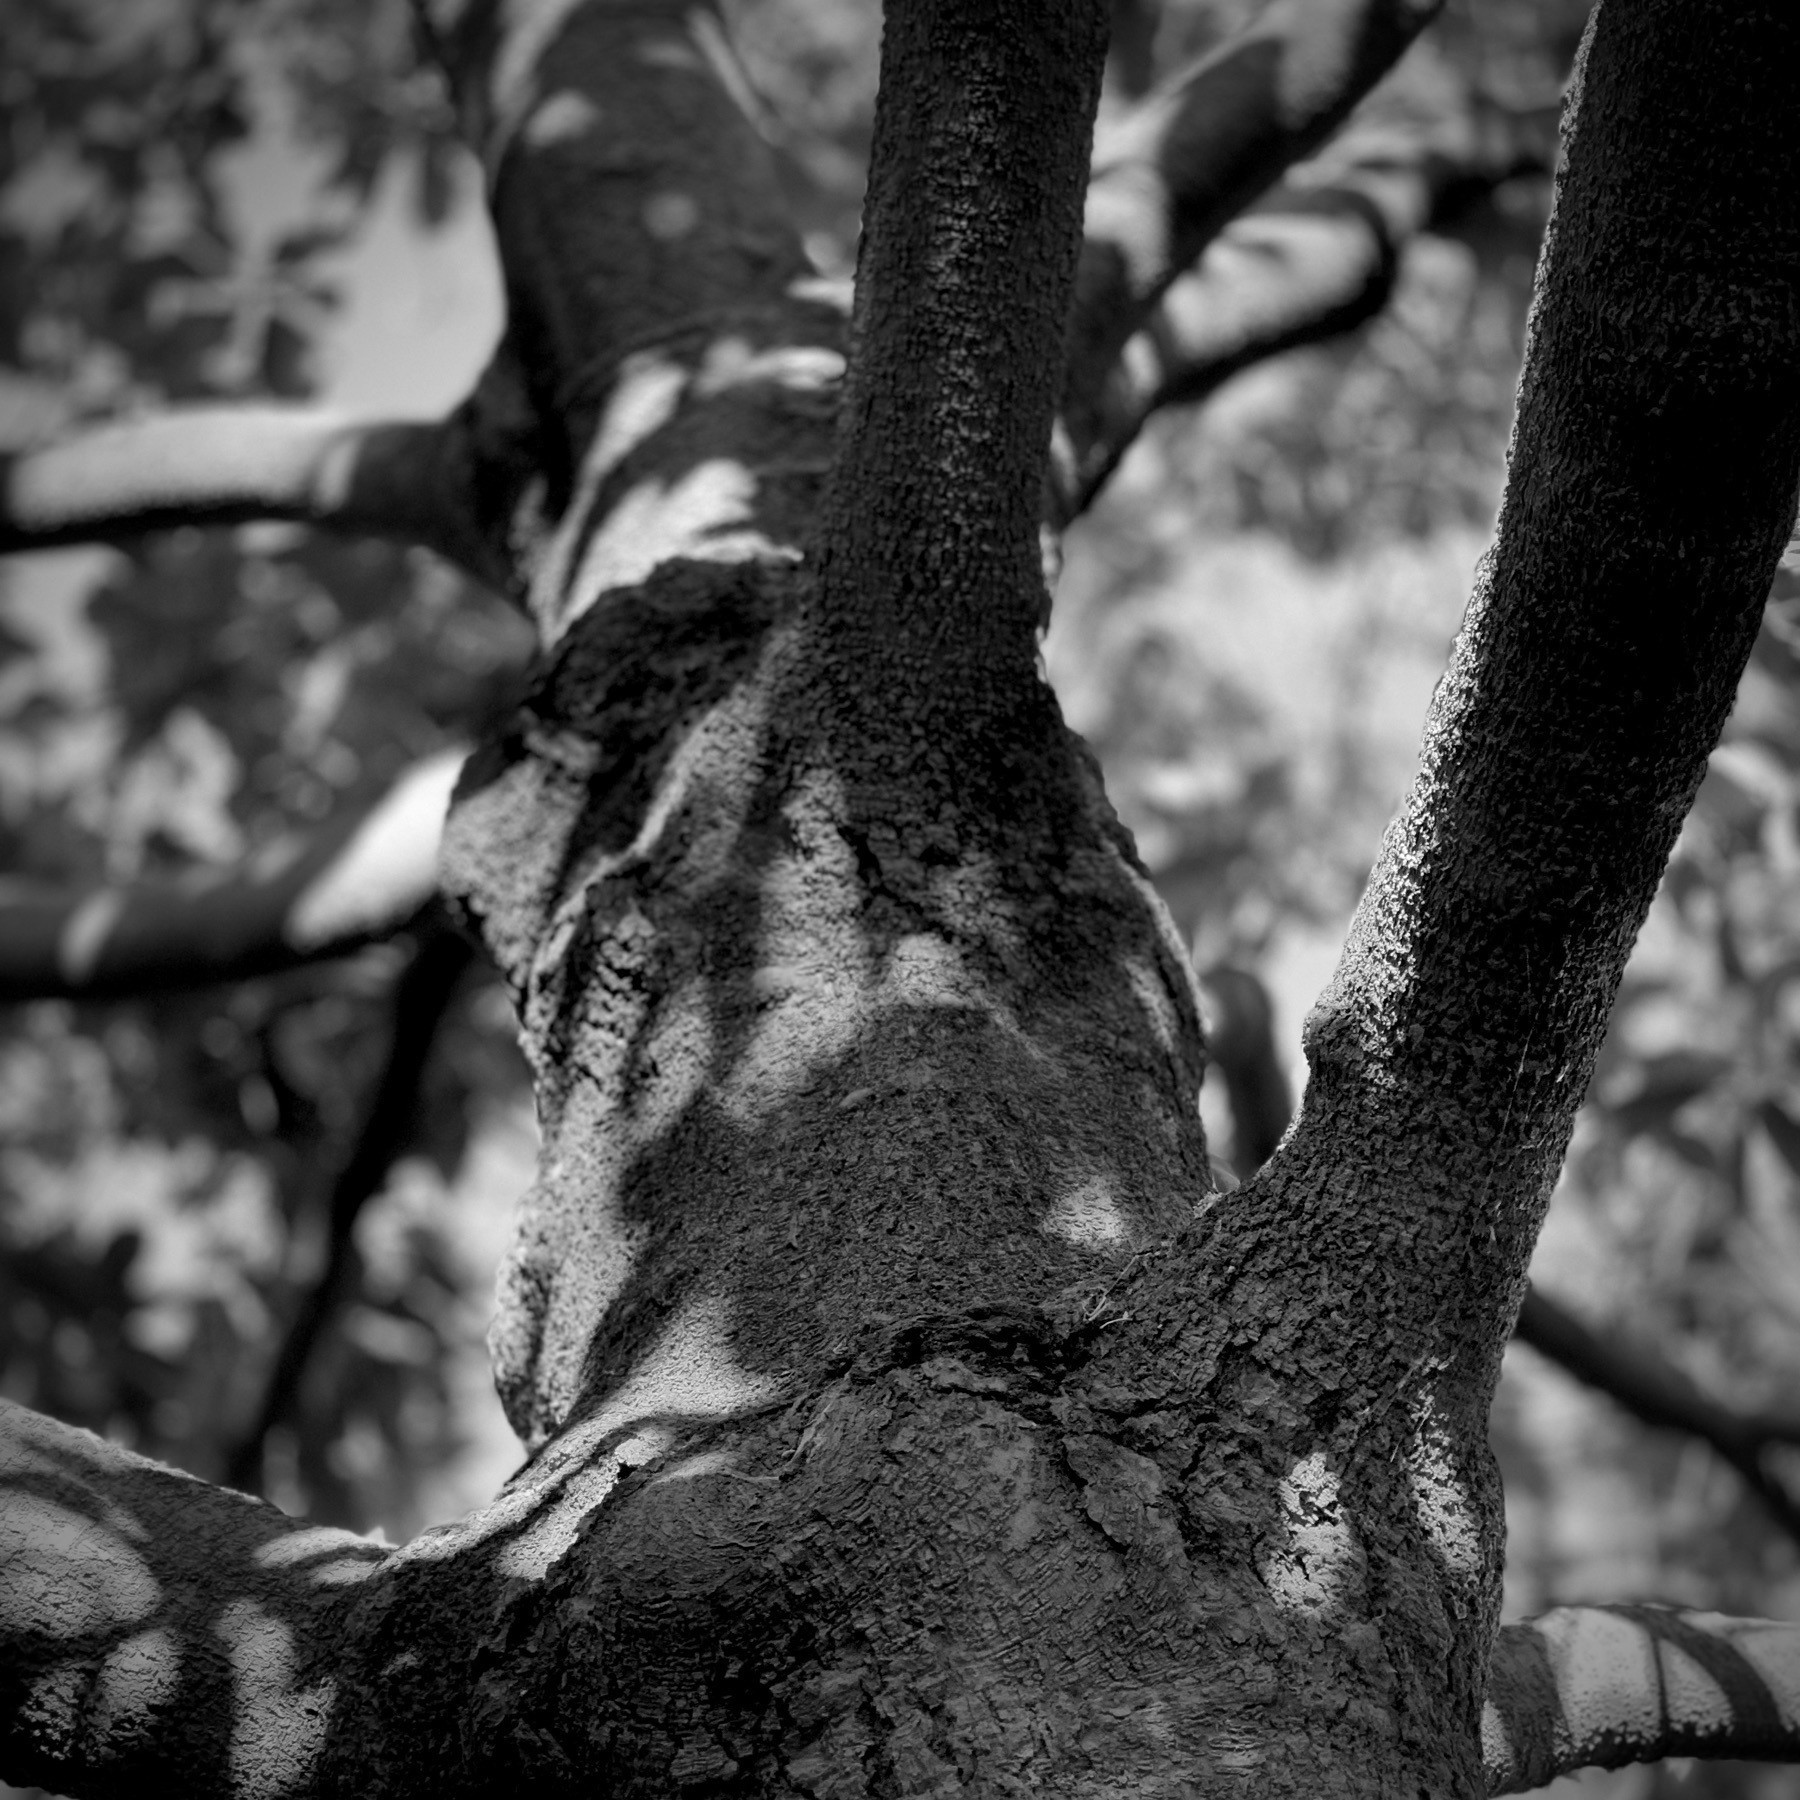 Black and white view looking up at a tree.